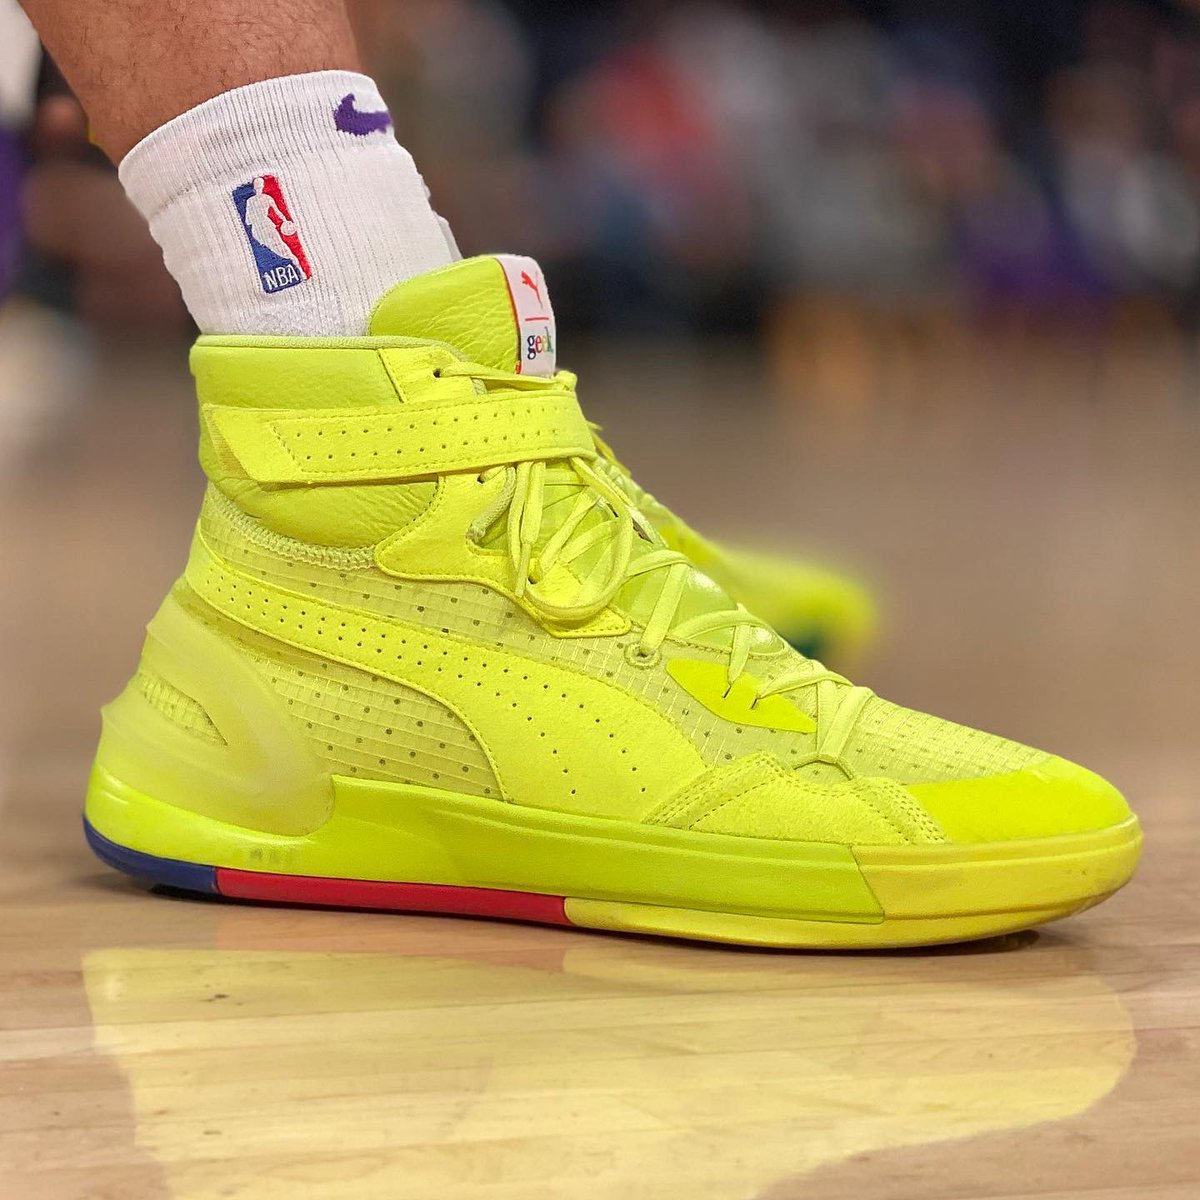 Danny Green in a new PUMA Sky Dreamer colorway at home! #NBAKicks